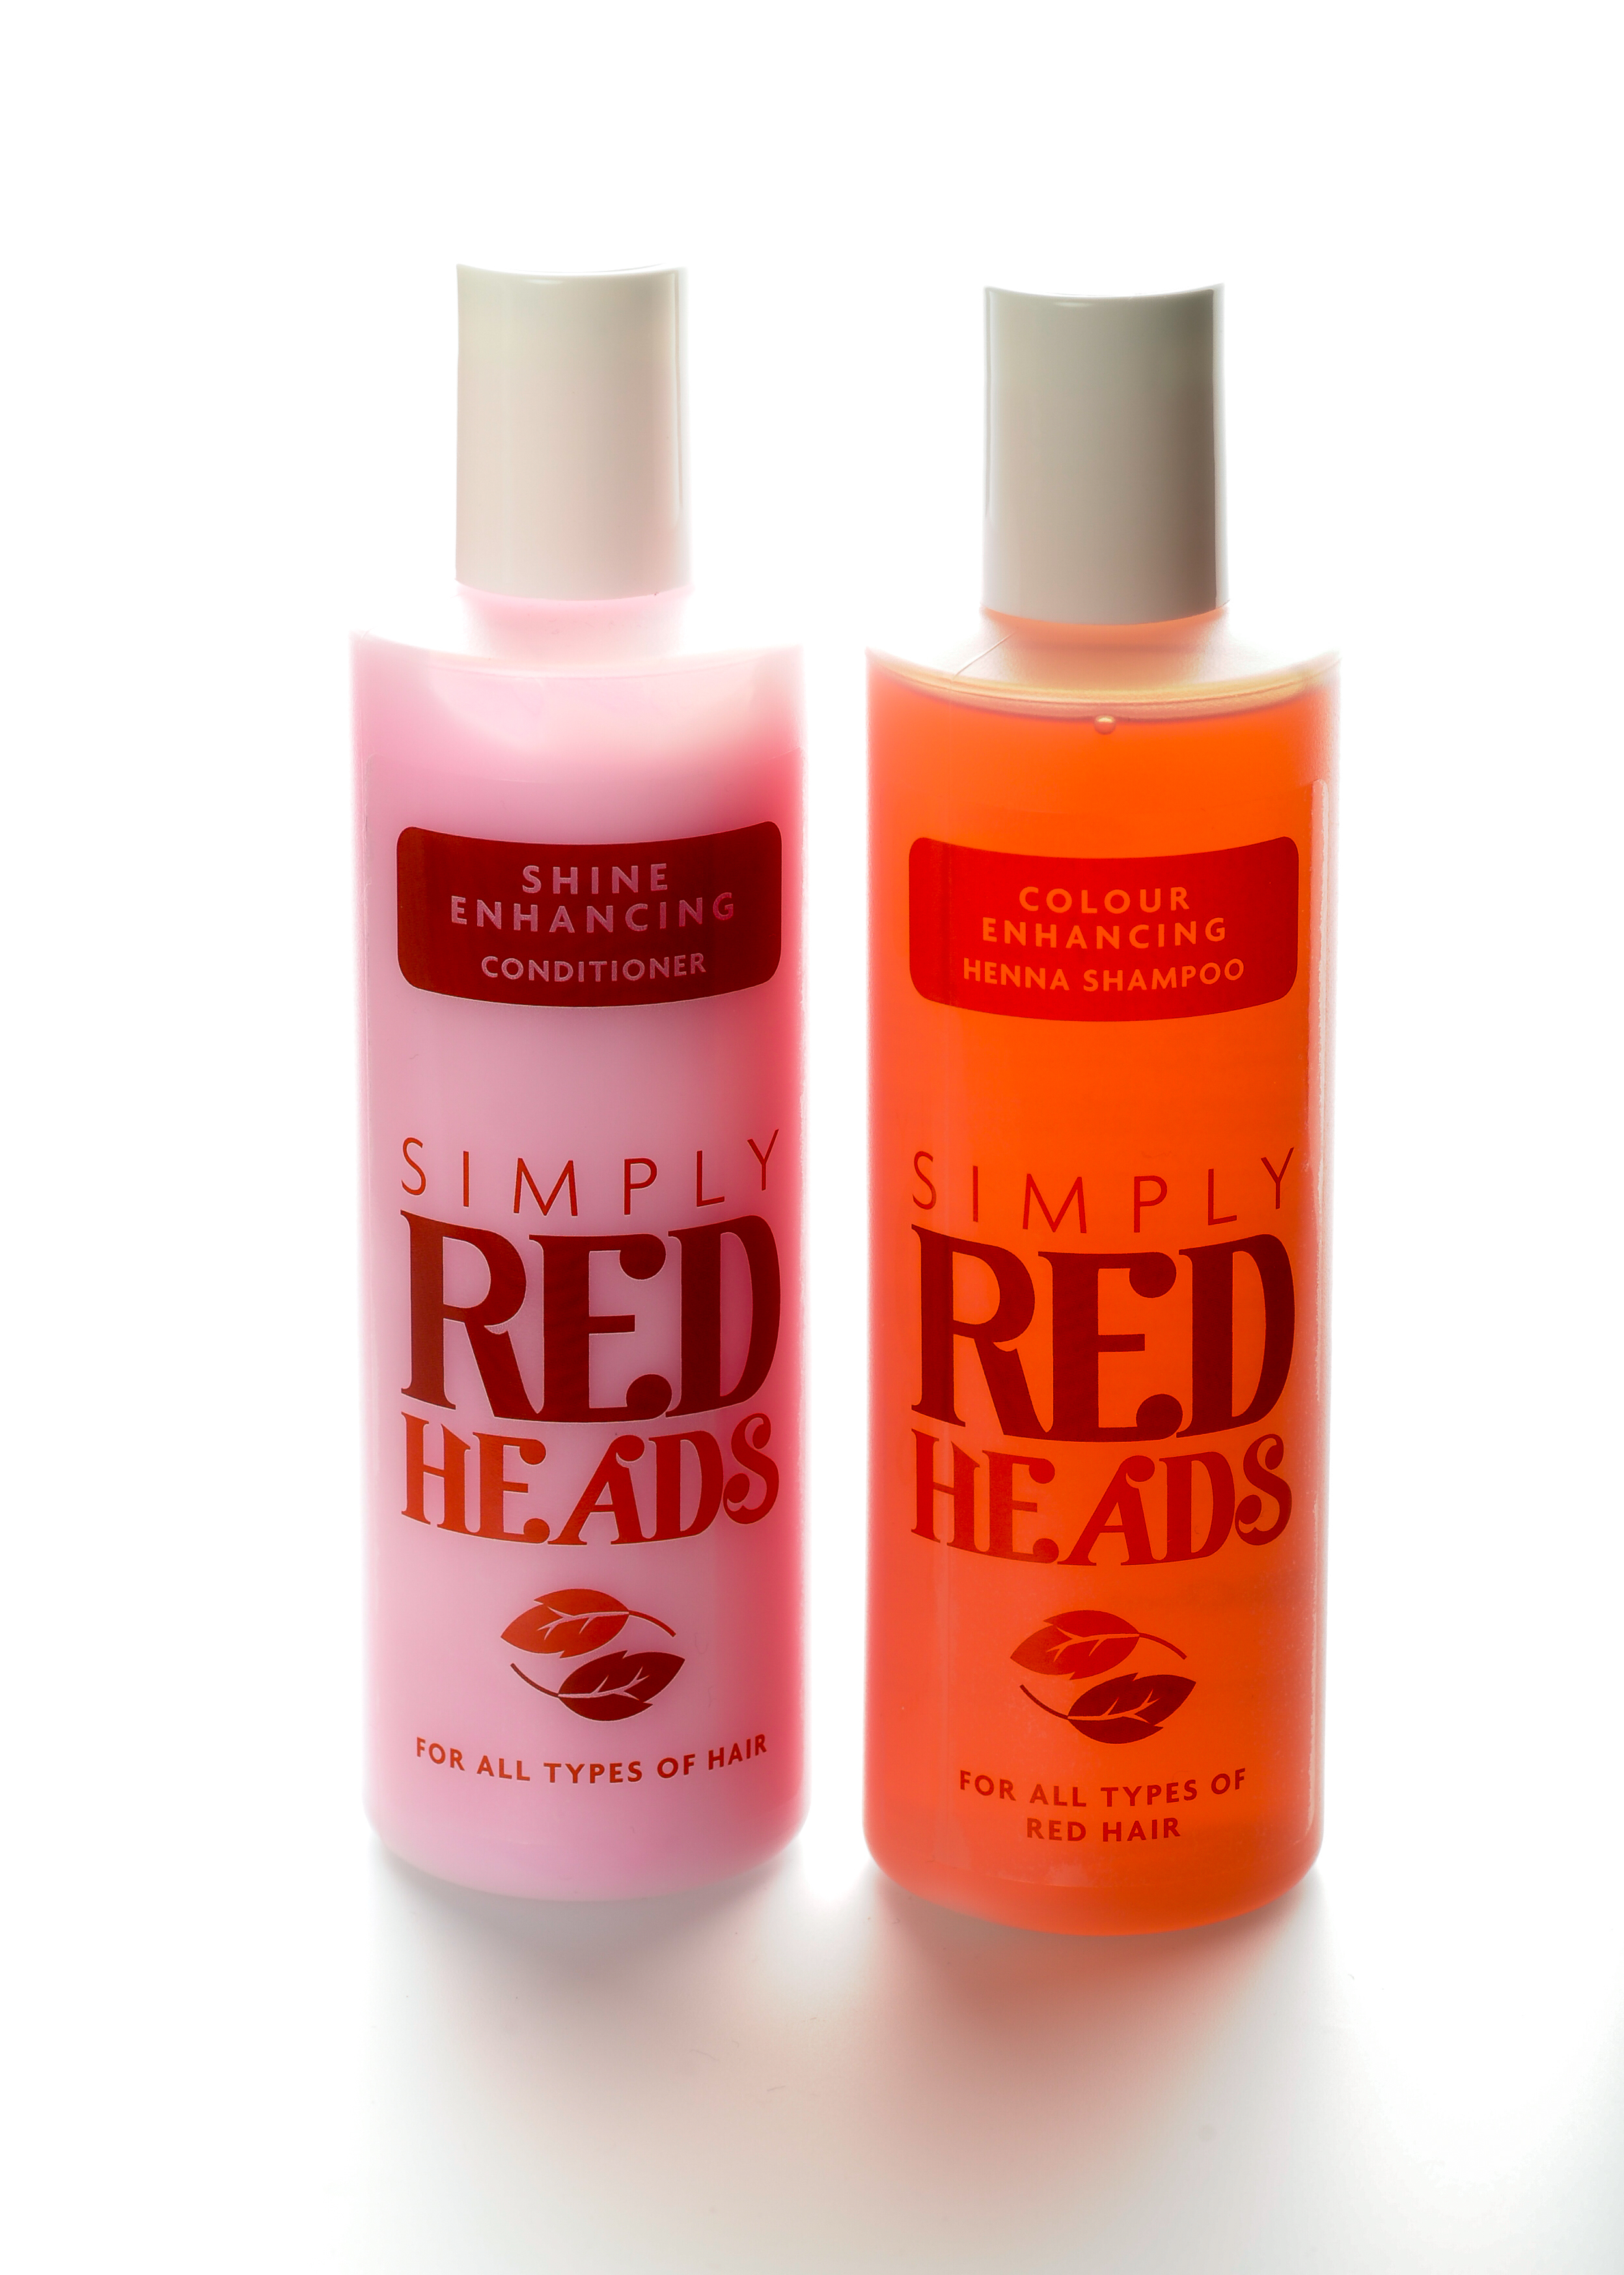 Twin Pack Colour Enhancing Henna Shampoo And Shine Enhancing